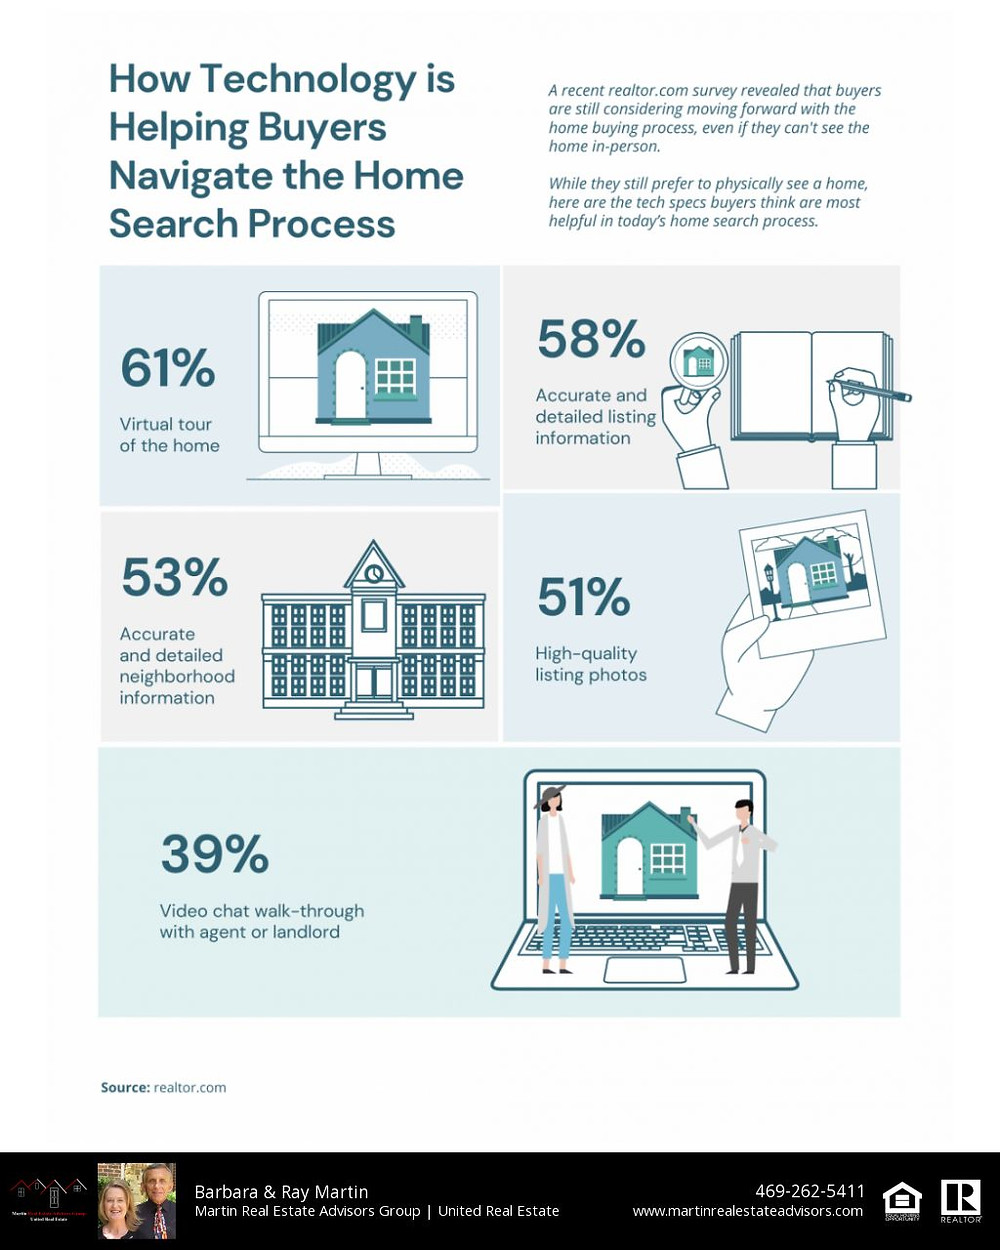 Technology and the home search!